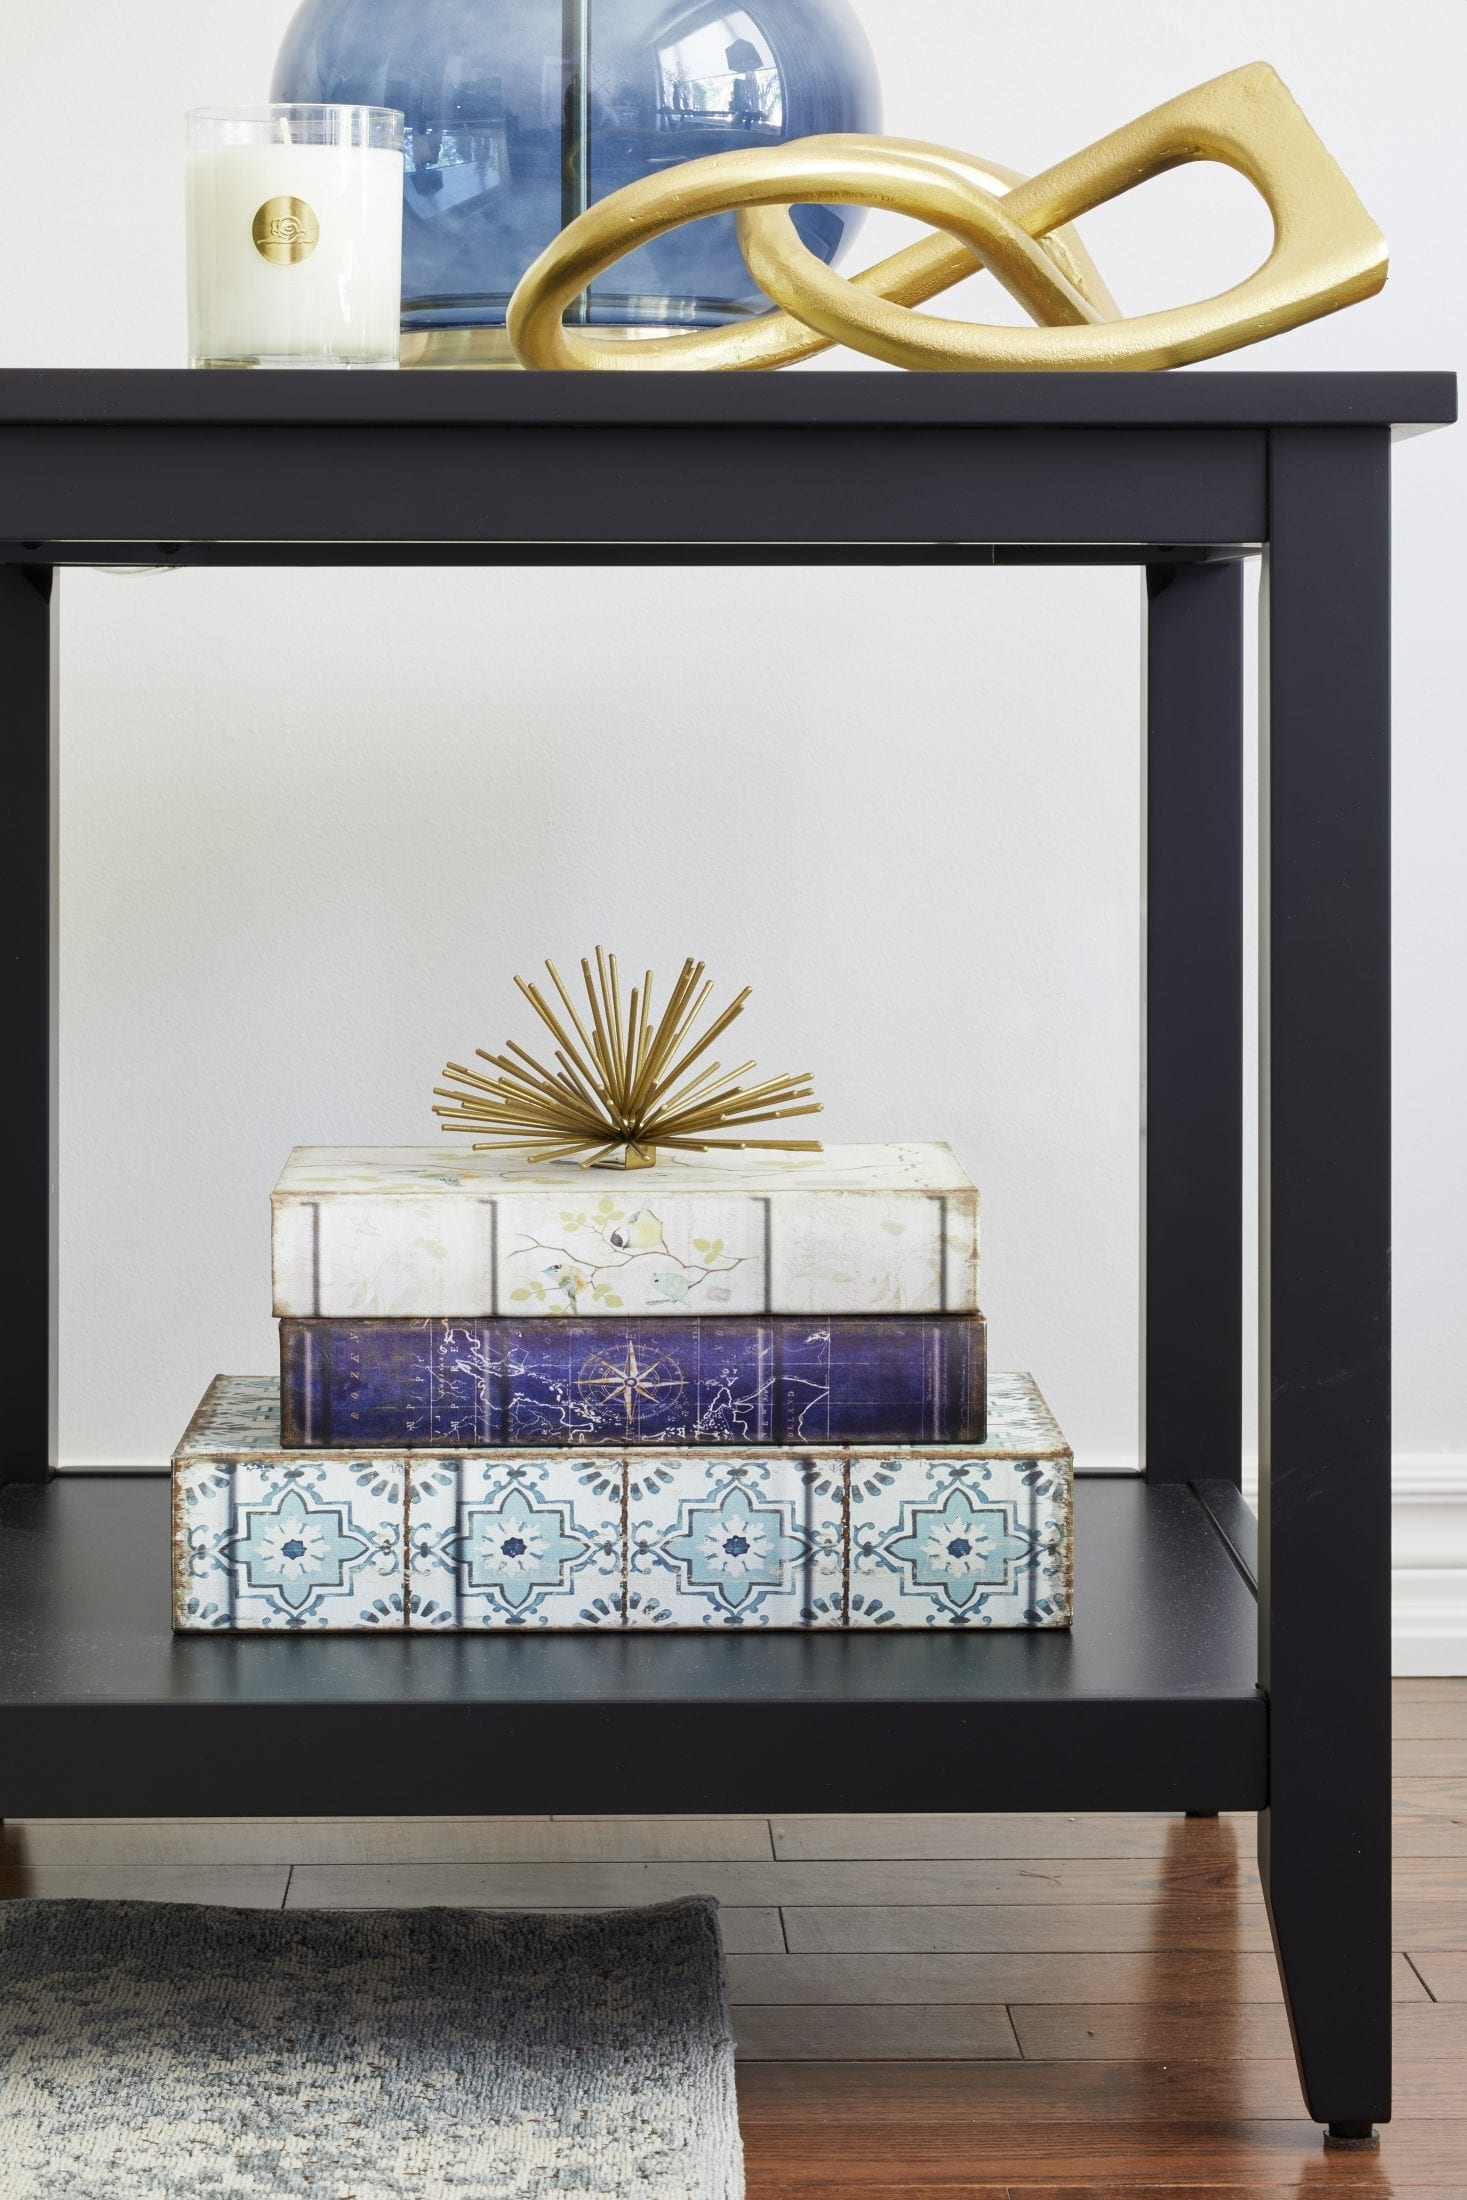 end table decor ideas gold accents and books styling tottenham